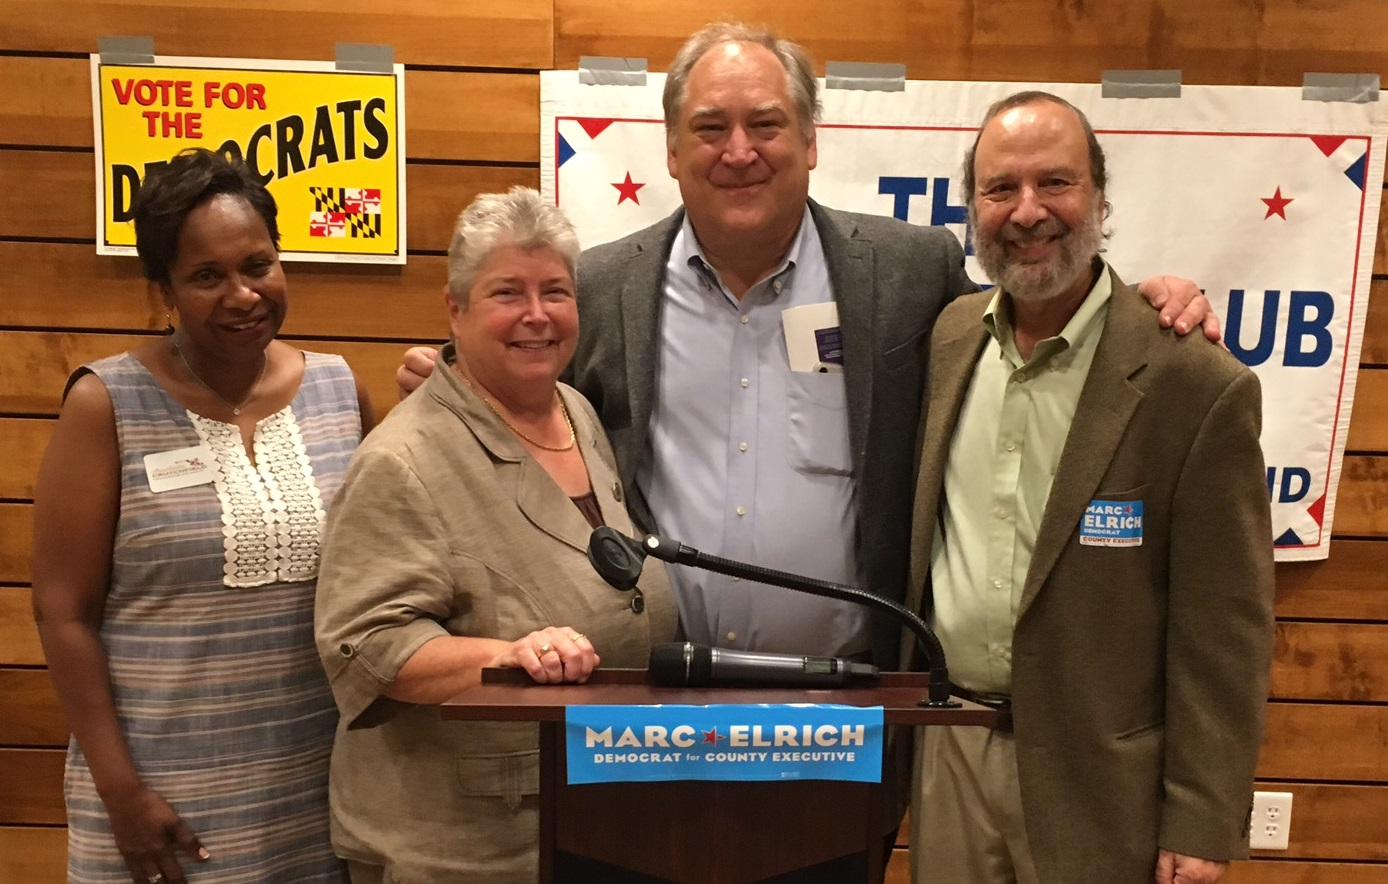 Four people stand together including Charlotte Crutchfield, Bonnie Cullison, Marc Elrich